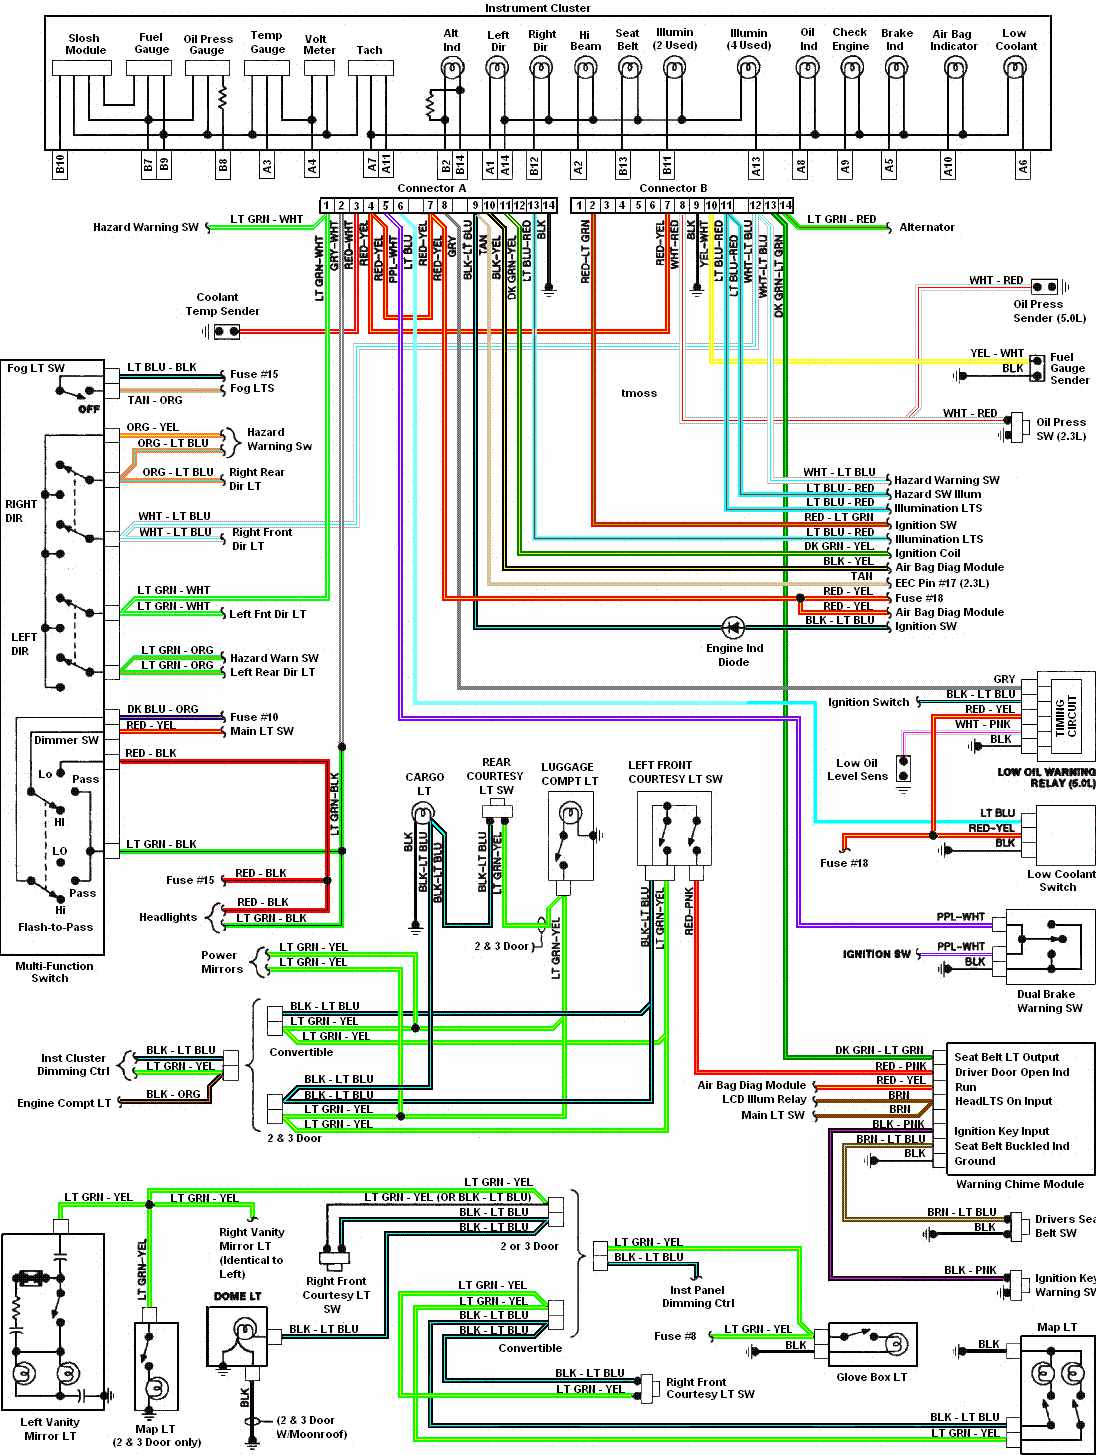 Instrument Cluster Wiring Diagrams Of as well 4x4 Wiring Diagrams 2001 Ford F 250 furthermore 1998 Chevrolet Blazer Blower Motor Control Module Circuit Diagram furthermore 2000 Mercury Mystique Fuel Pump Wiring Diagram furthermore EFI 20Swap 20  20Wiring. on cadillac deville blower motor wiring diagram